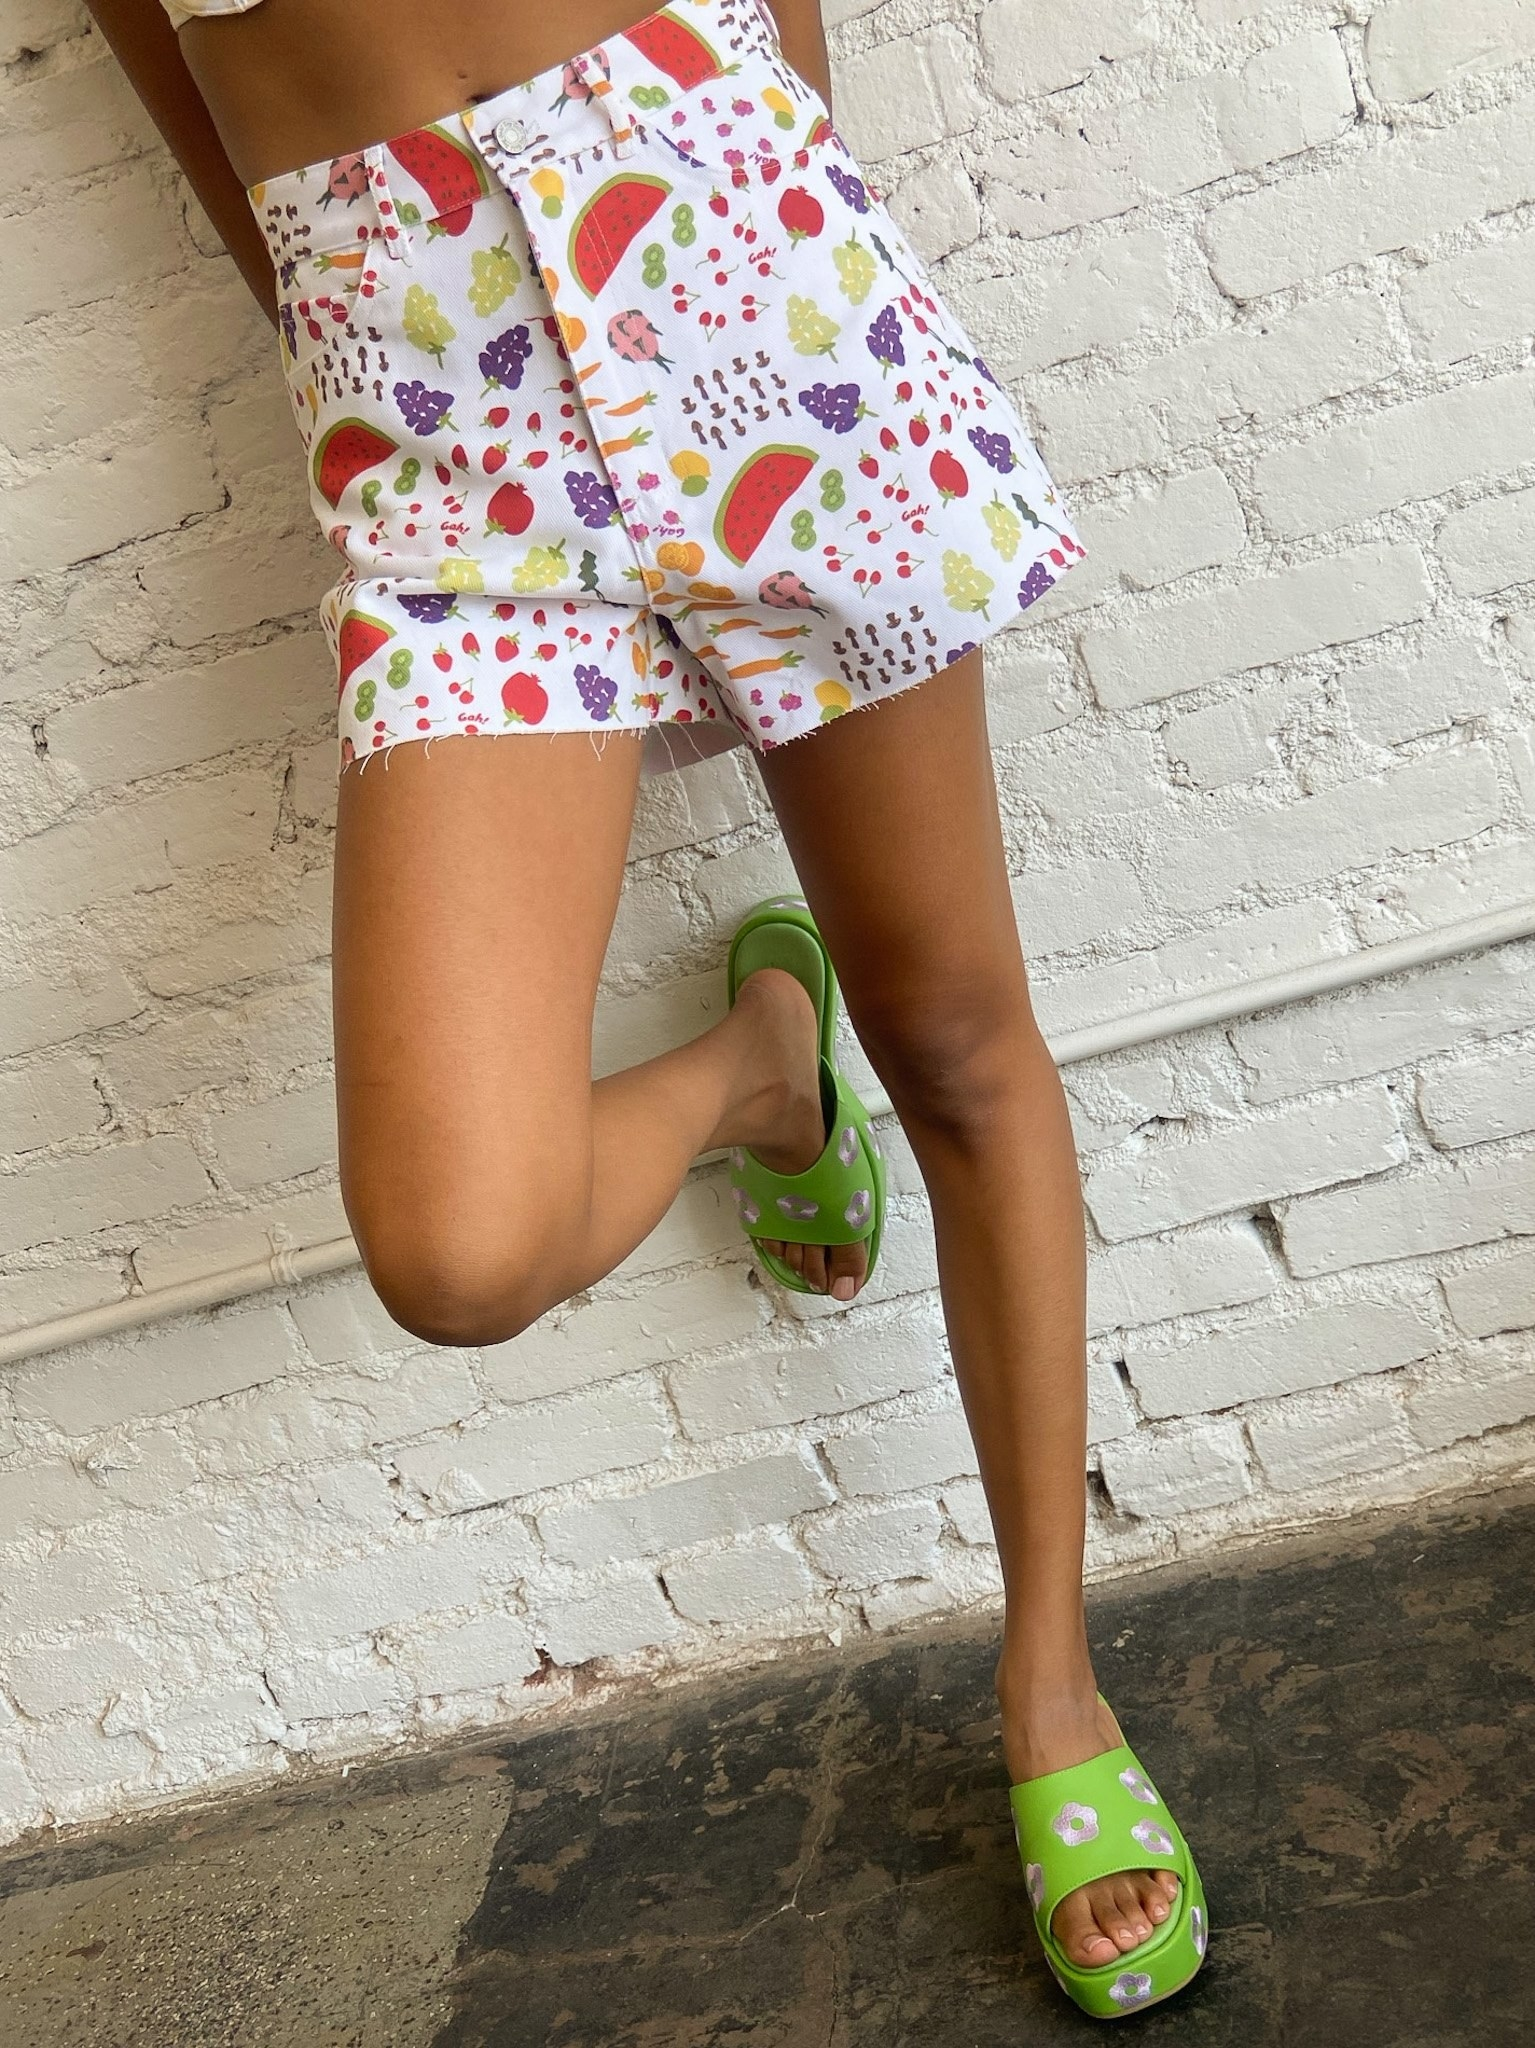 model wearing white demin shorts with illustrations of fruit all over them